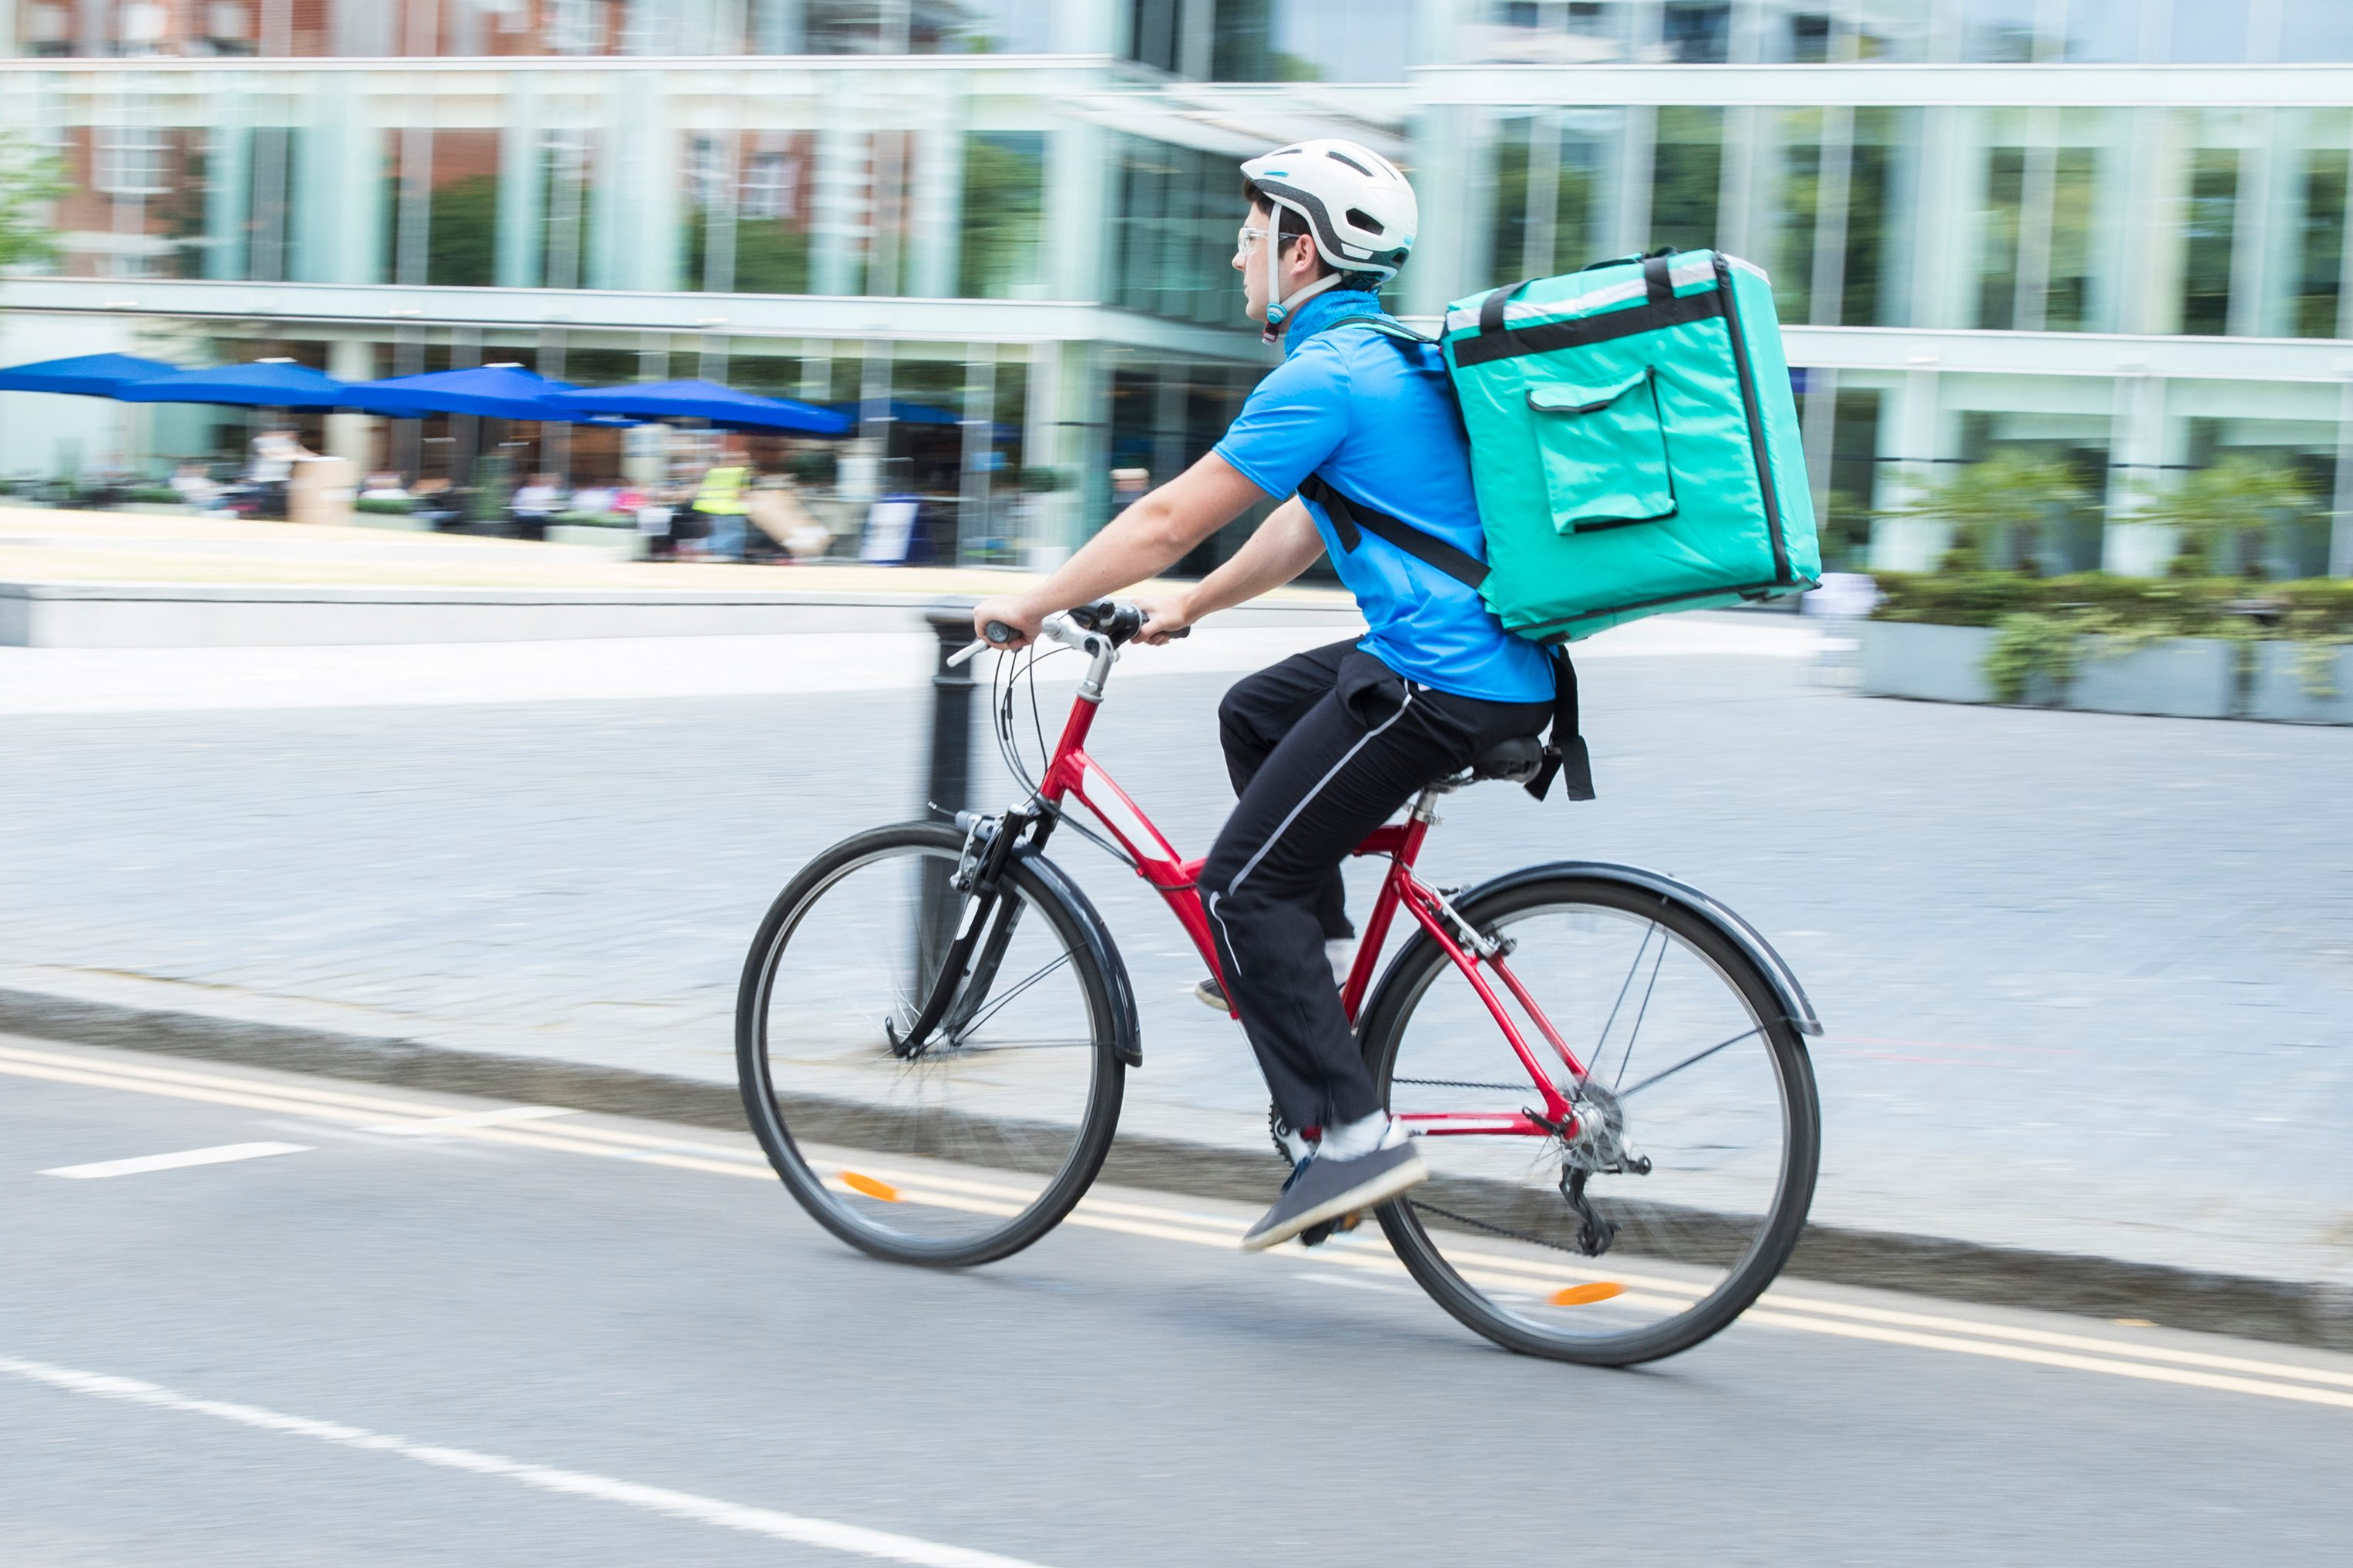 Workplace Safety is a Growing Concern in the Gig Economy